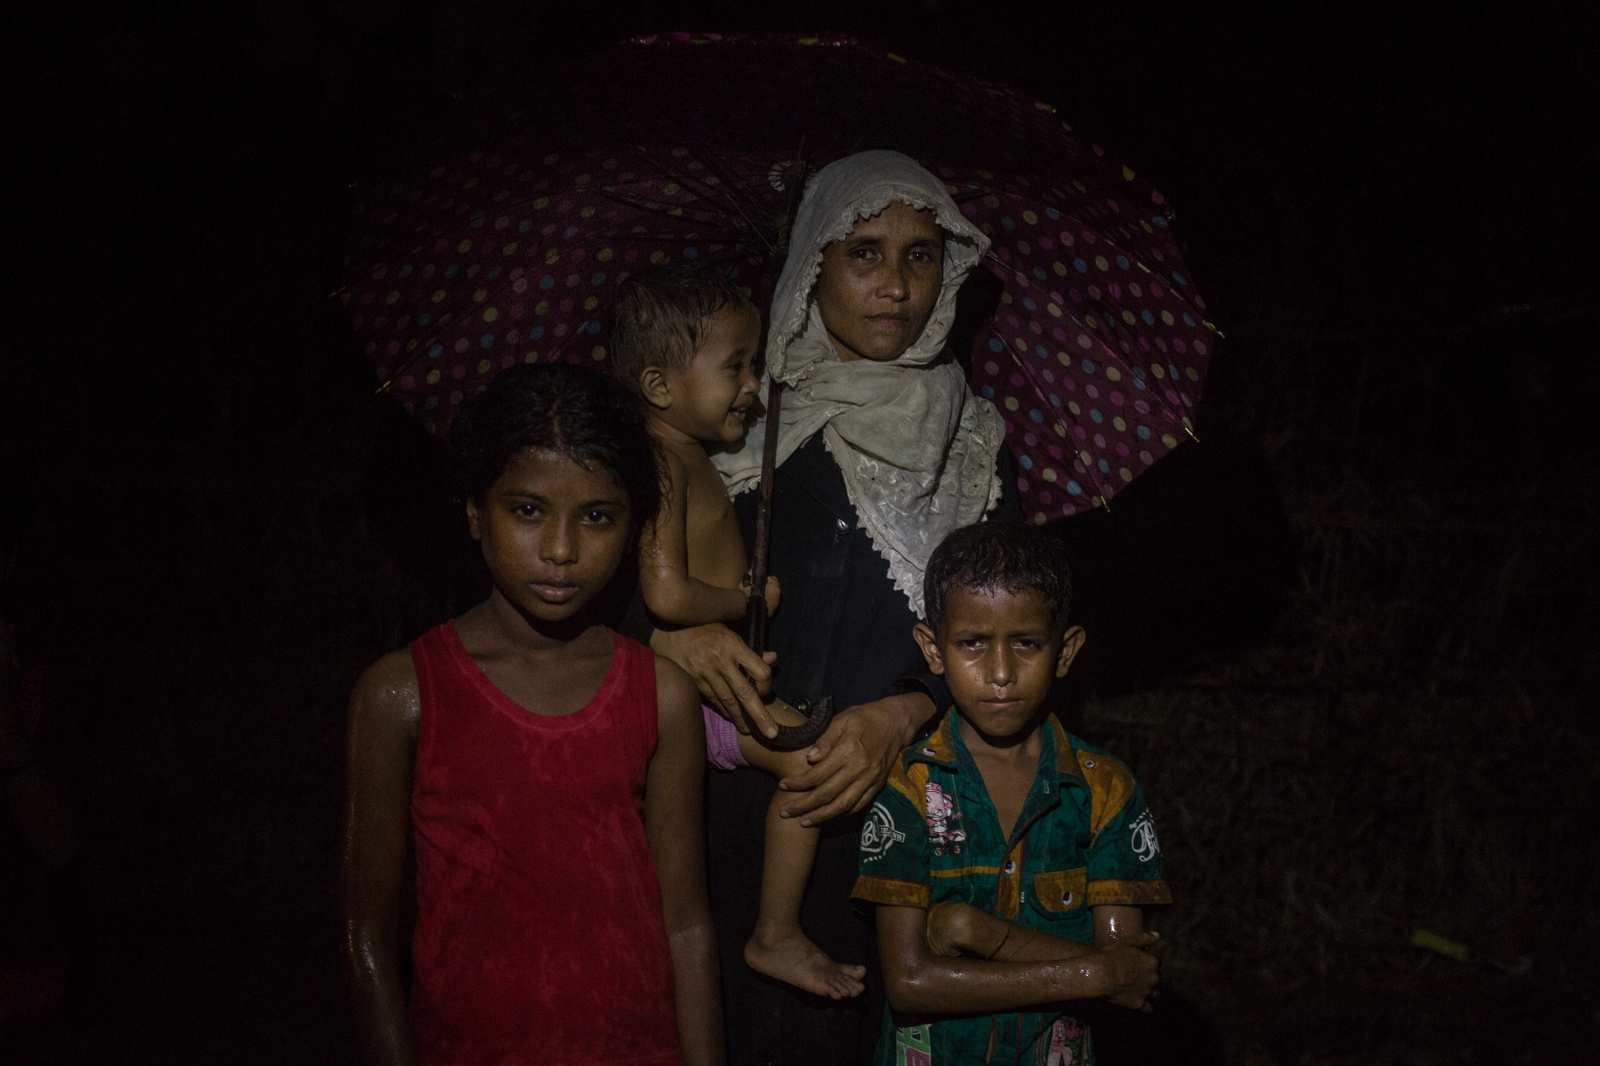 Fatima Khatoon, 30, waits with three of her four children by the side of the road for food and cash distributions near the Balukhali refugee camp in Bangladesh on Saturday September 23, 2017. Fatima arrived 21 days ago after fleeing from her village in the Buthidaung Township. She does not know where her husband is, or if he is alive. They became separated after they Burmese Army attacked their village.